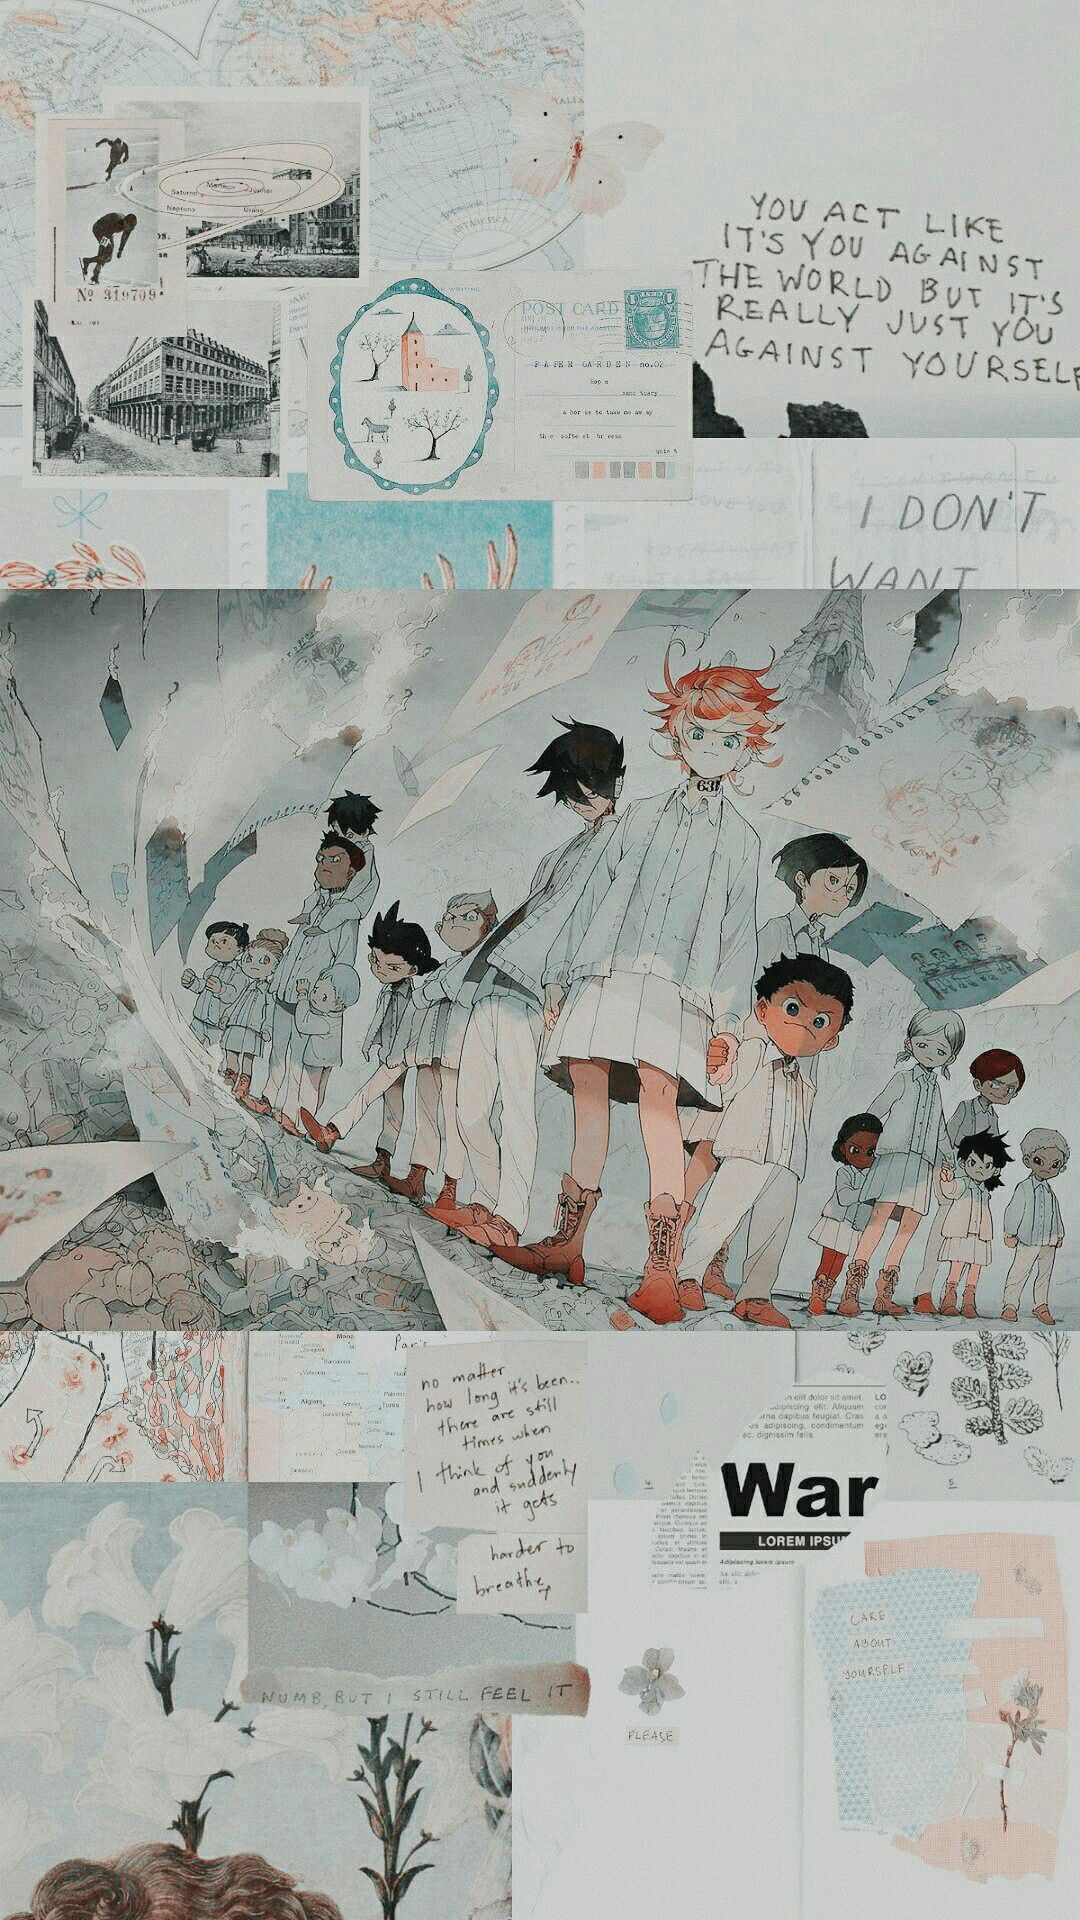 List Of Awesome Aesthetic Anime Wallpaper Iphone The Promised Neverland In 2020 Aesthetic Anime Anime Wallpaper Iphone Cute Anime Wallpaper